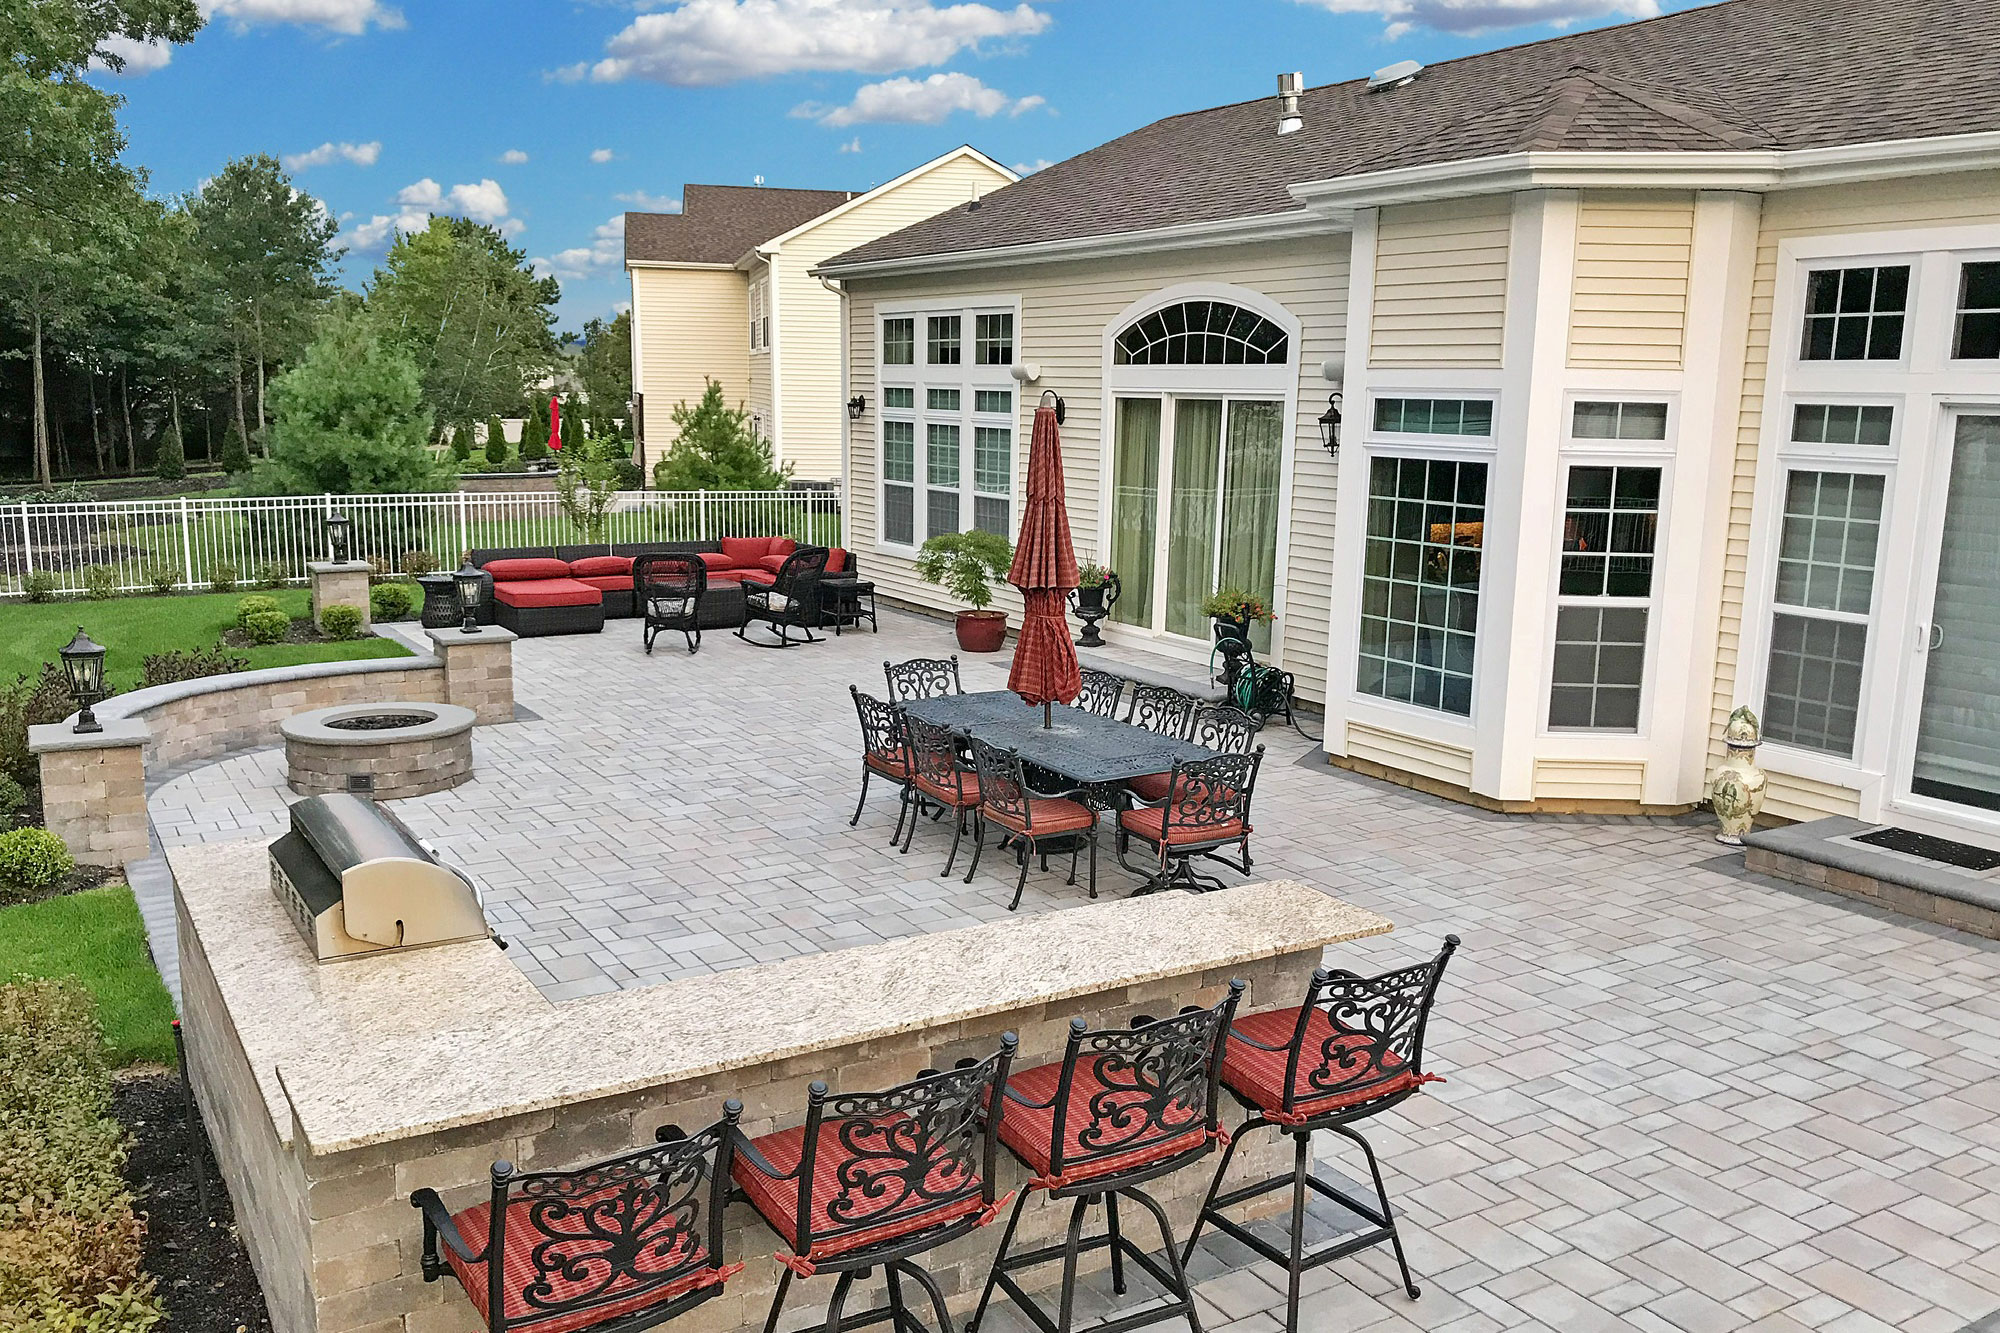 Patio designed with brickwork and outdoor kitchen